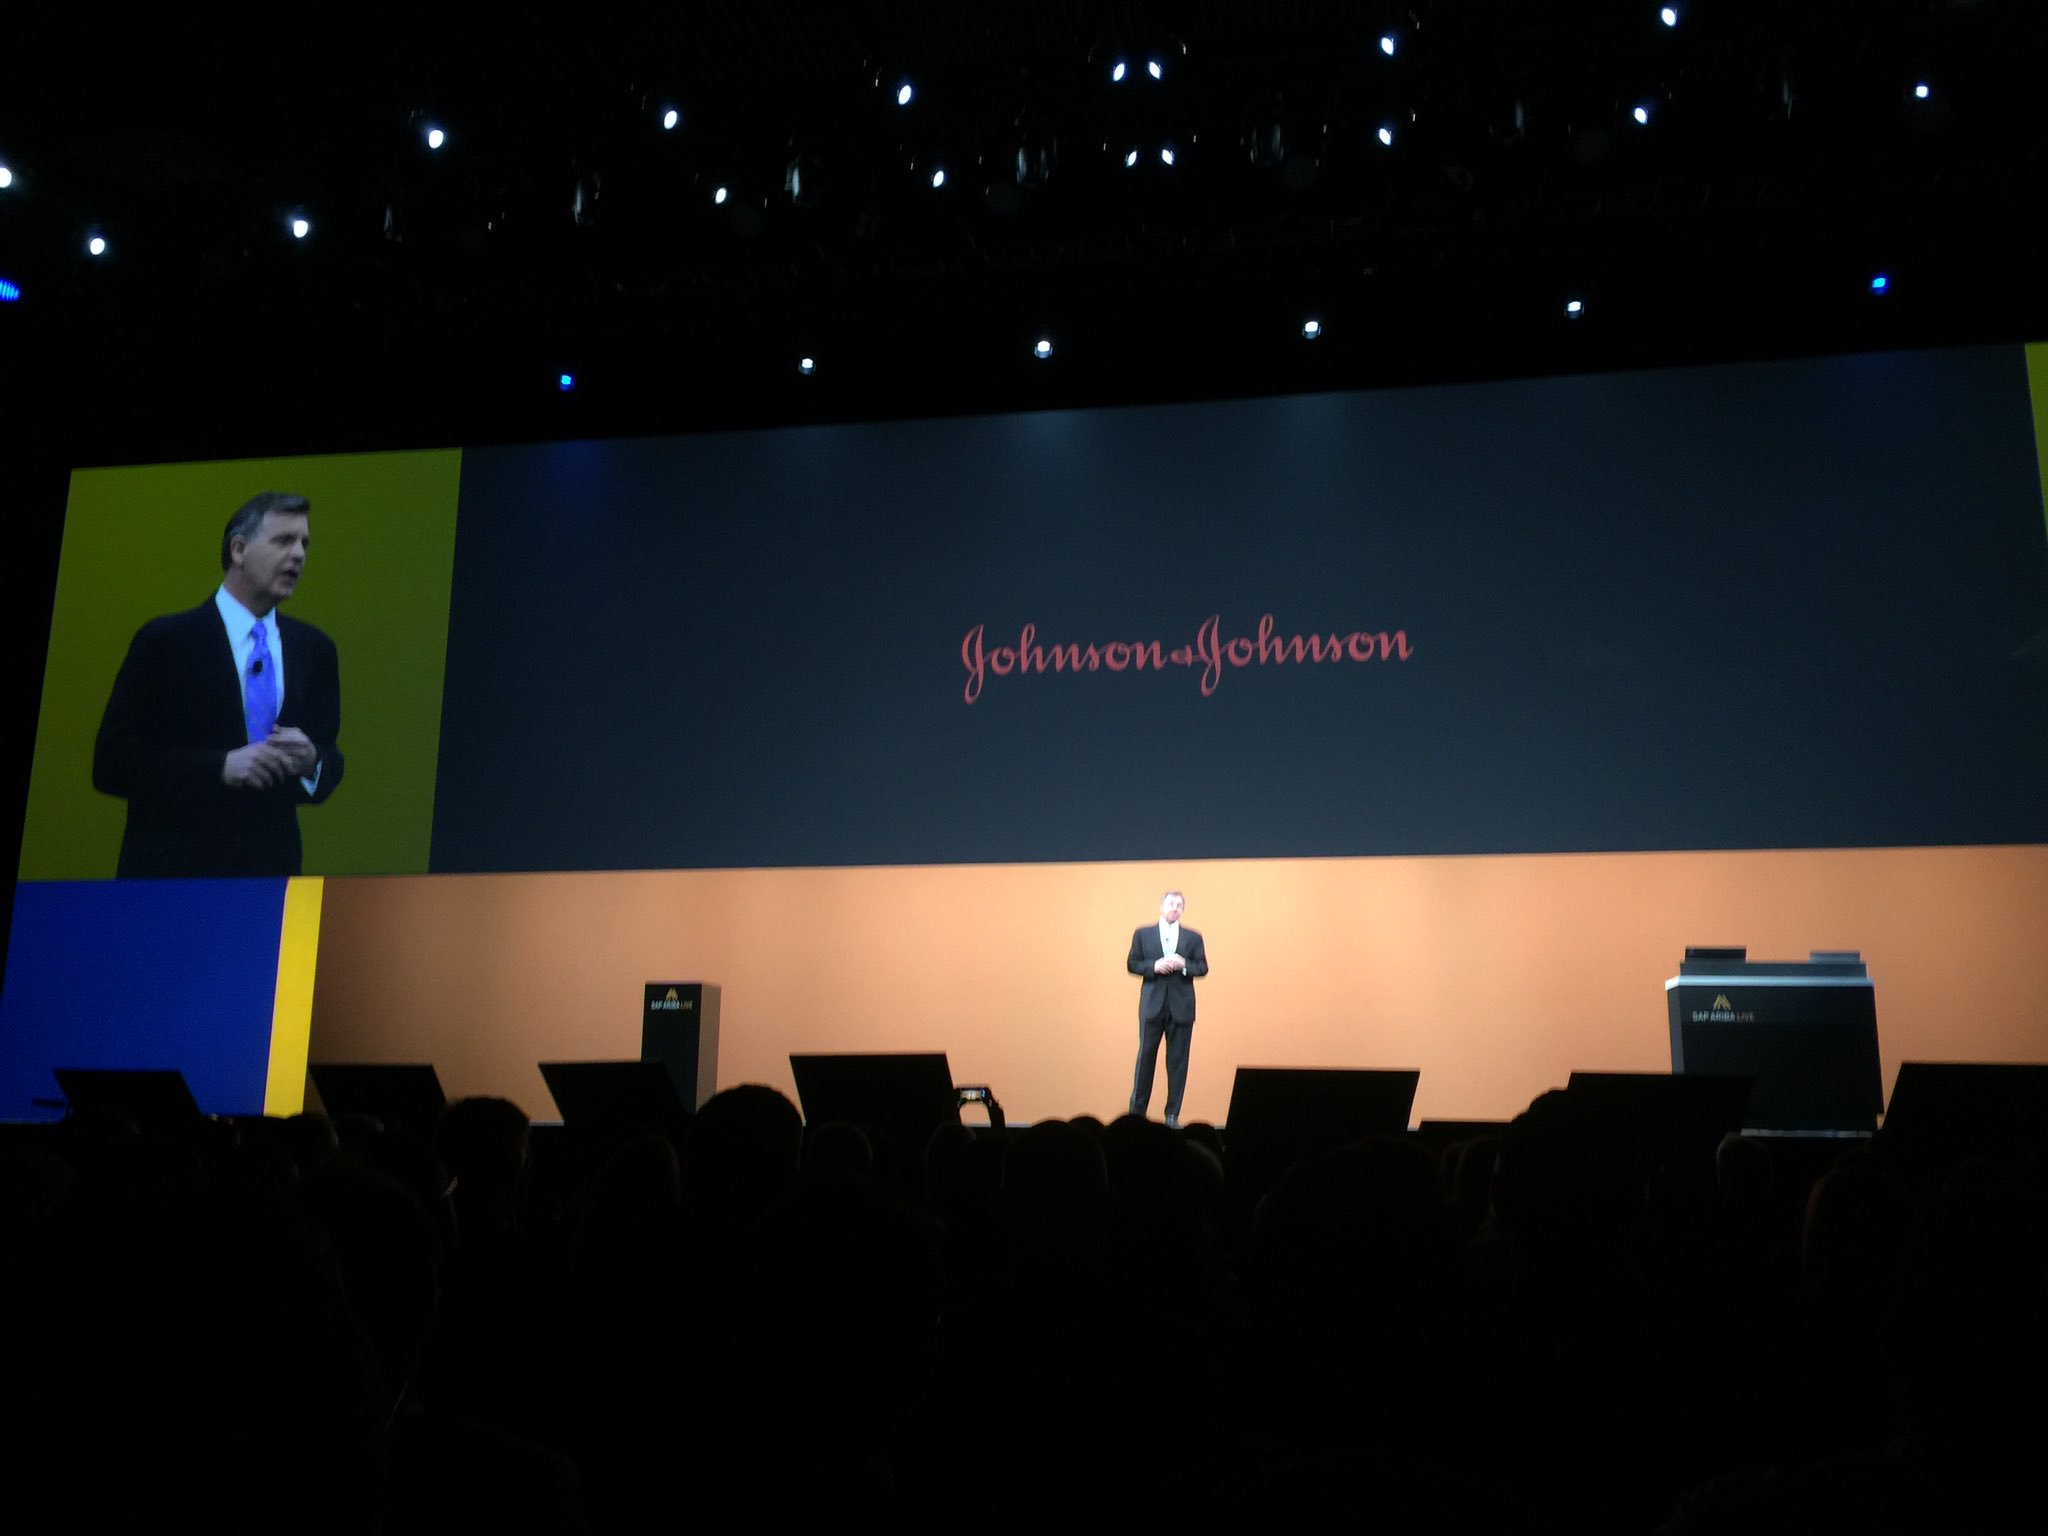 In six months after going live, Johnson and Johnson sees 1/2 of spend ($7.5B) through Ariba. #SAPARIBALIVE https://t.co/kwiQX2v2t1